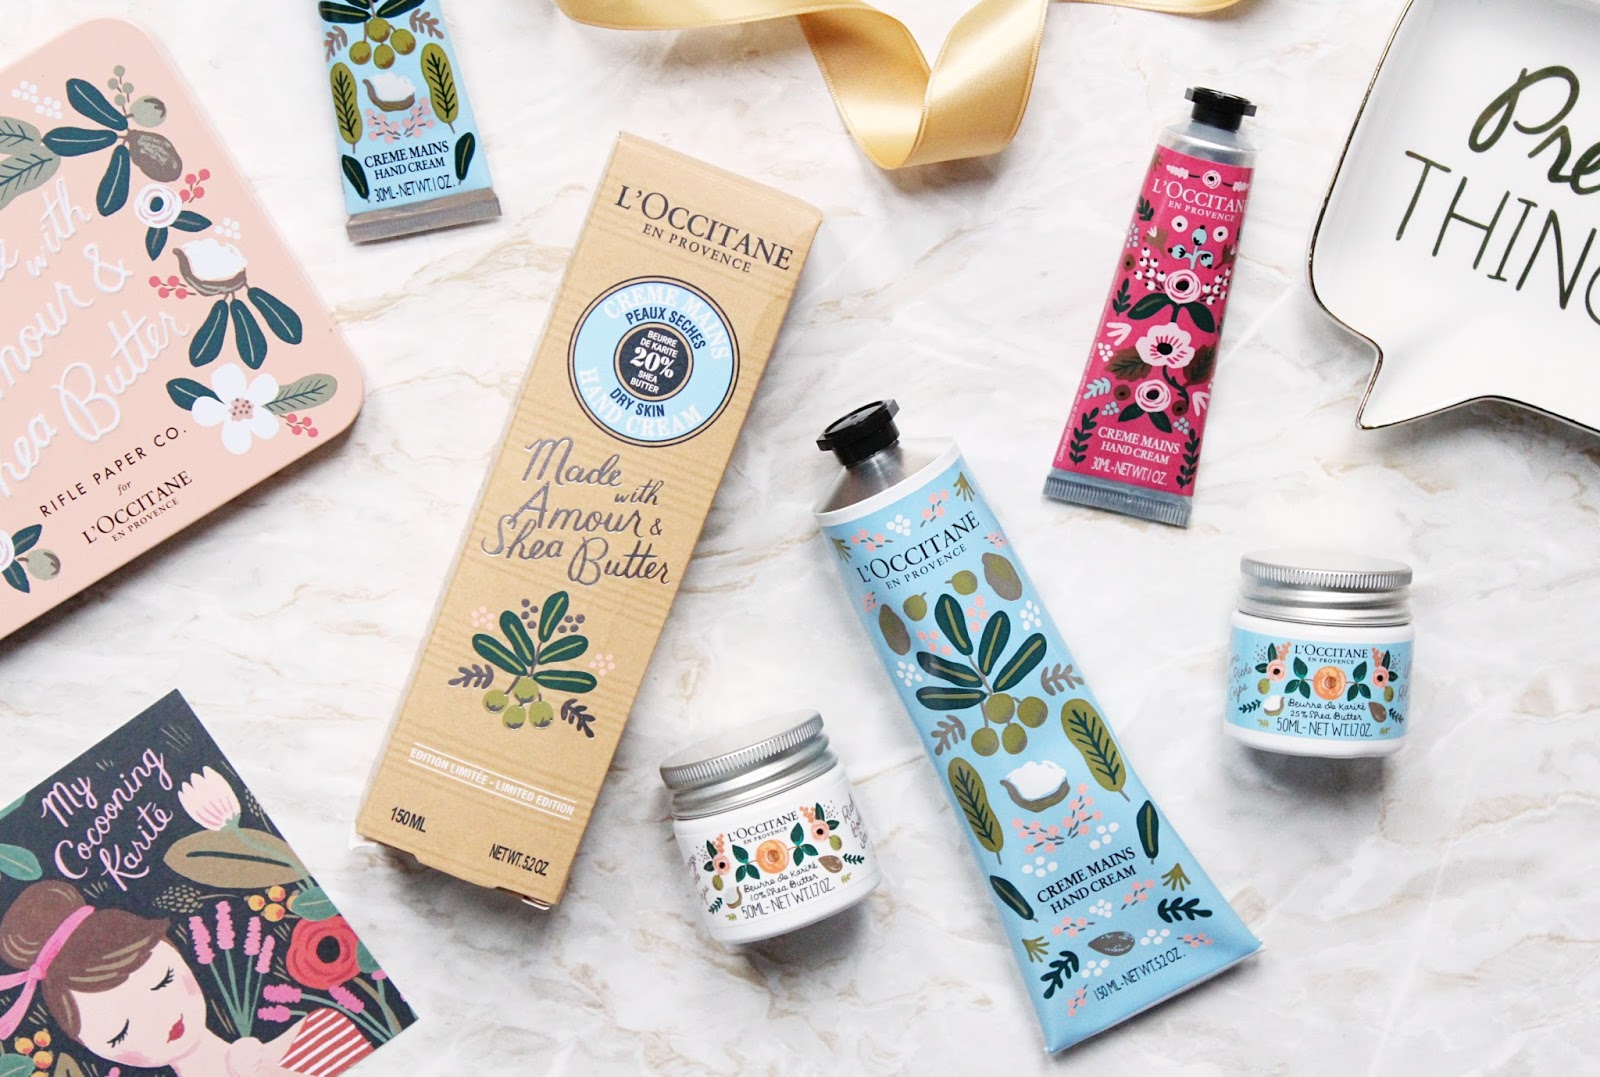 L'Occitane x Rifle Paper Co.